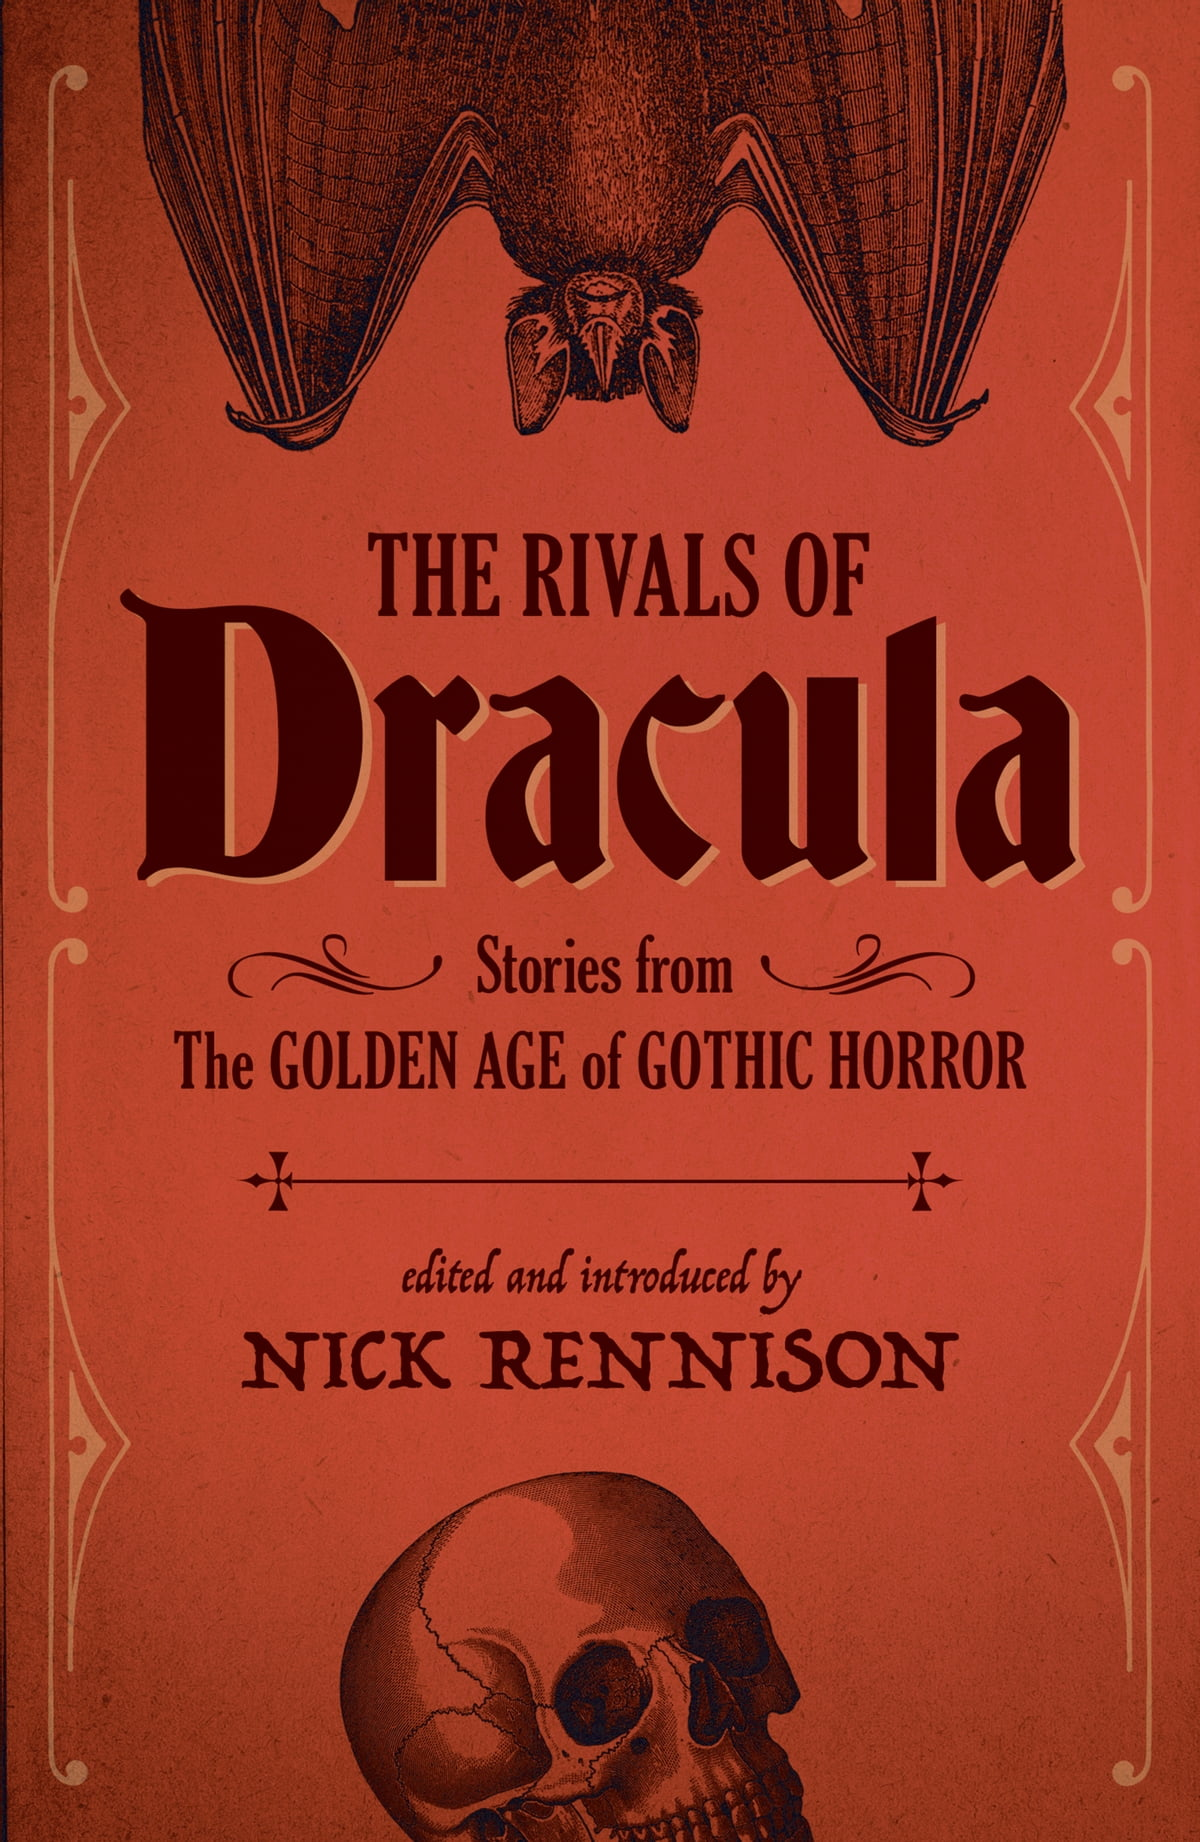 The Rivals of Dracula eBook by Nick Rennison - 9781843446330 | Rakuten Kobo